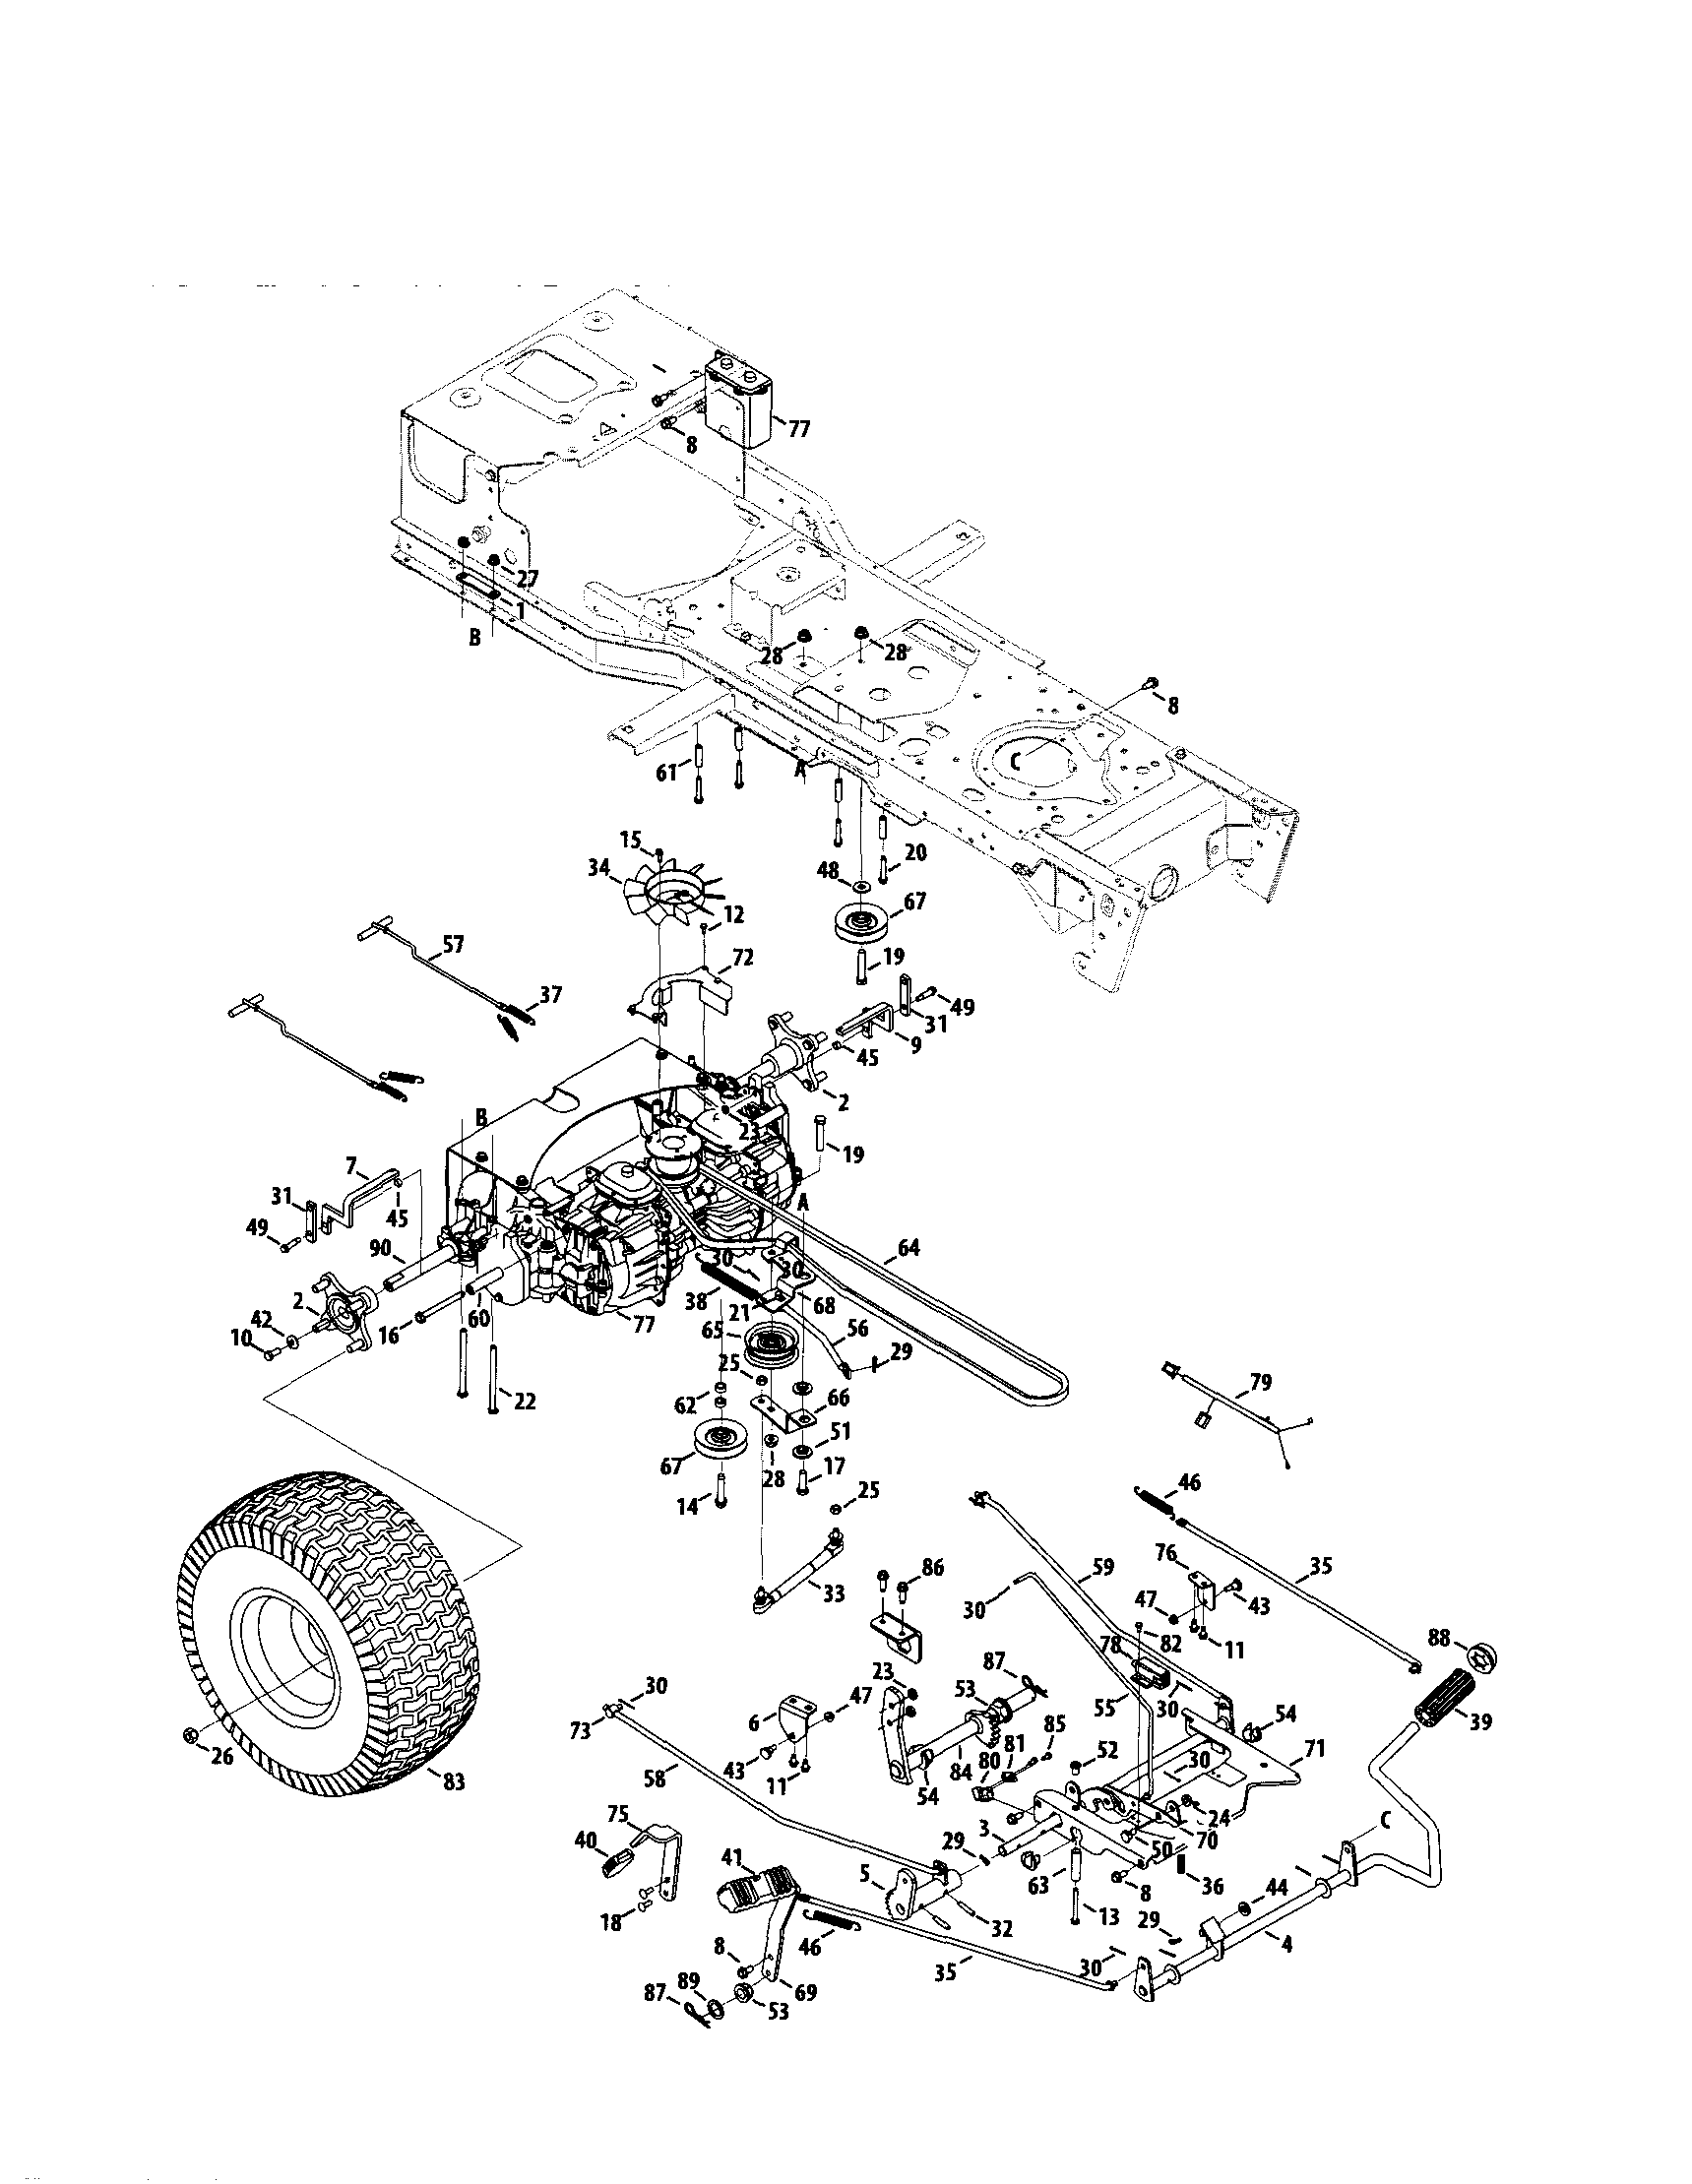 Zero Turn Mower Drawing At Free For Personal Use Kubota Diesel Engine Parts Diagram 1719x2219 Templates Repair Manual Bobcat Toro